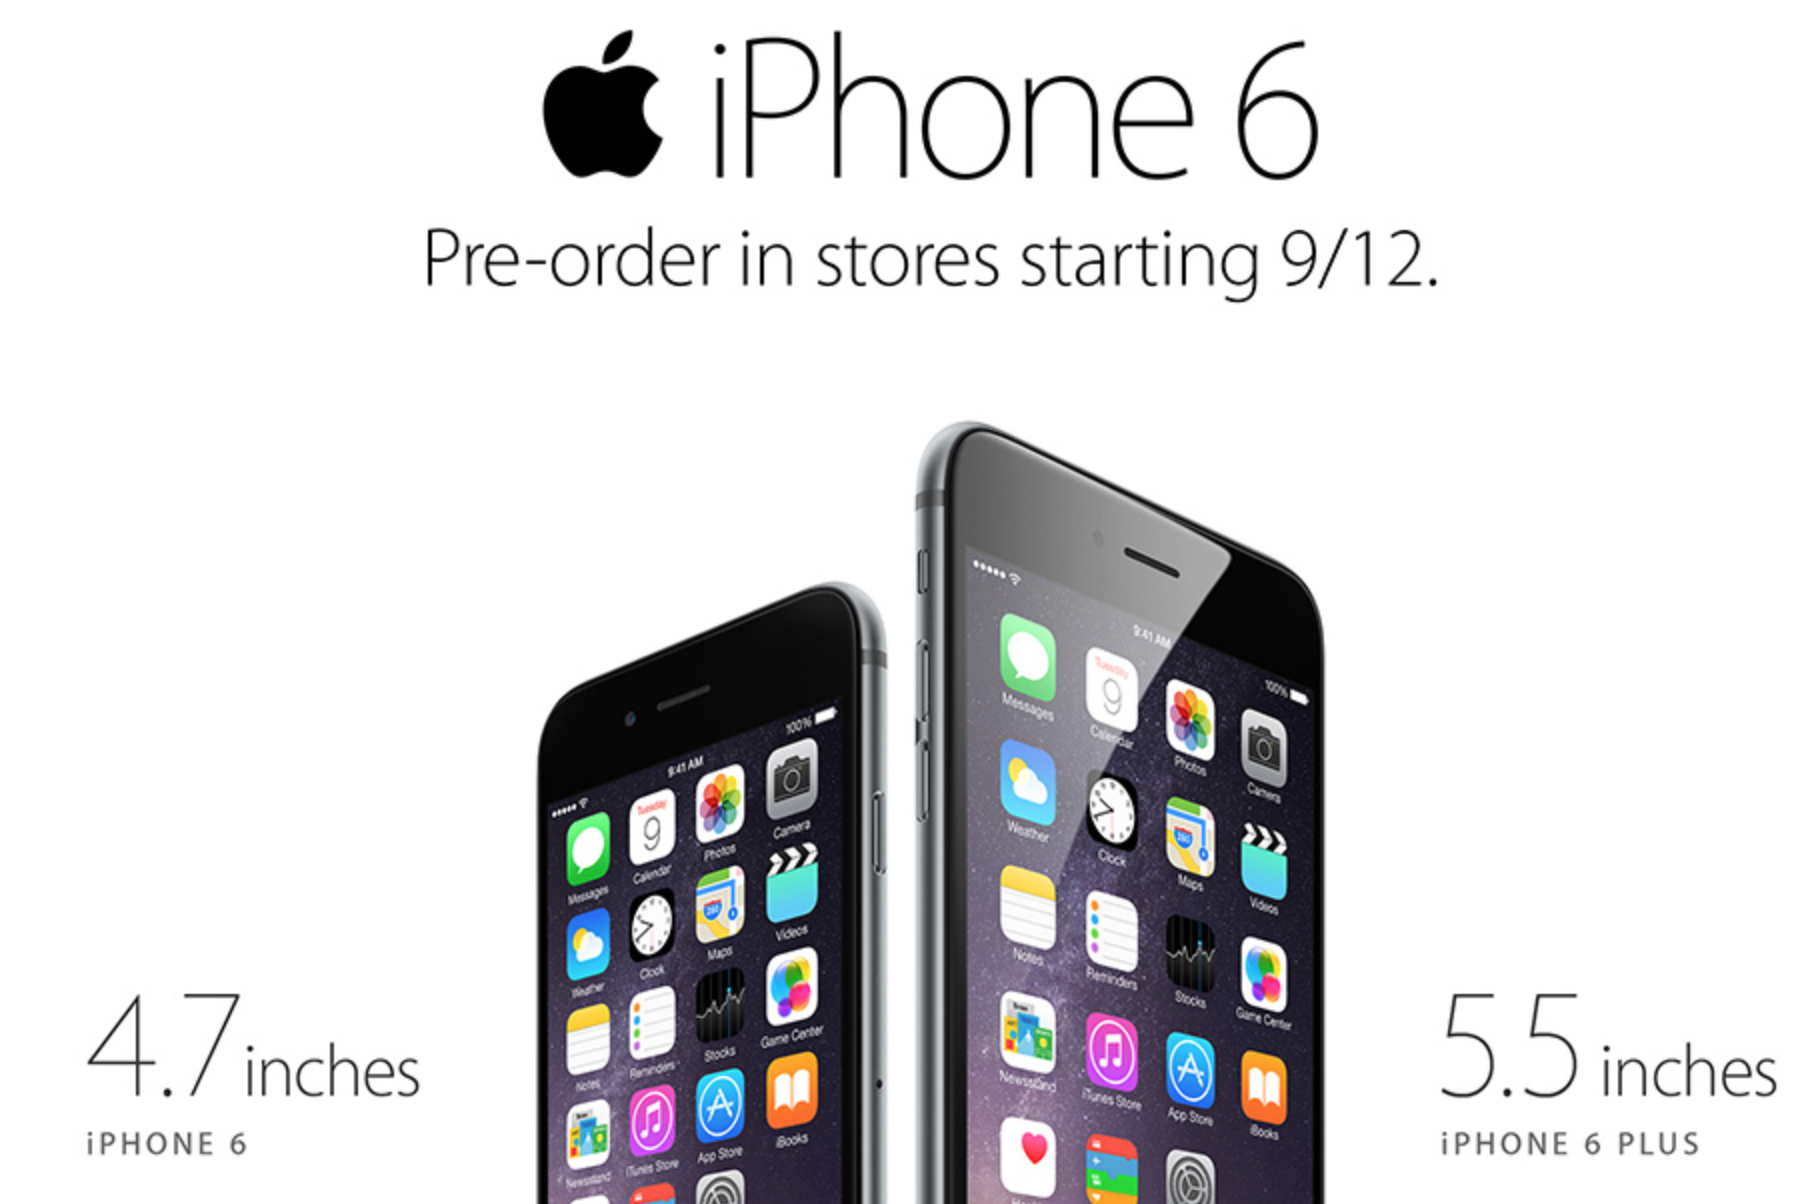 Updated: Target to accept iPhone 6 preorders on Sept. 12, offering trade-in deals on older models